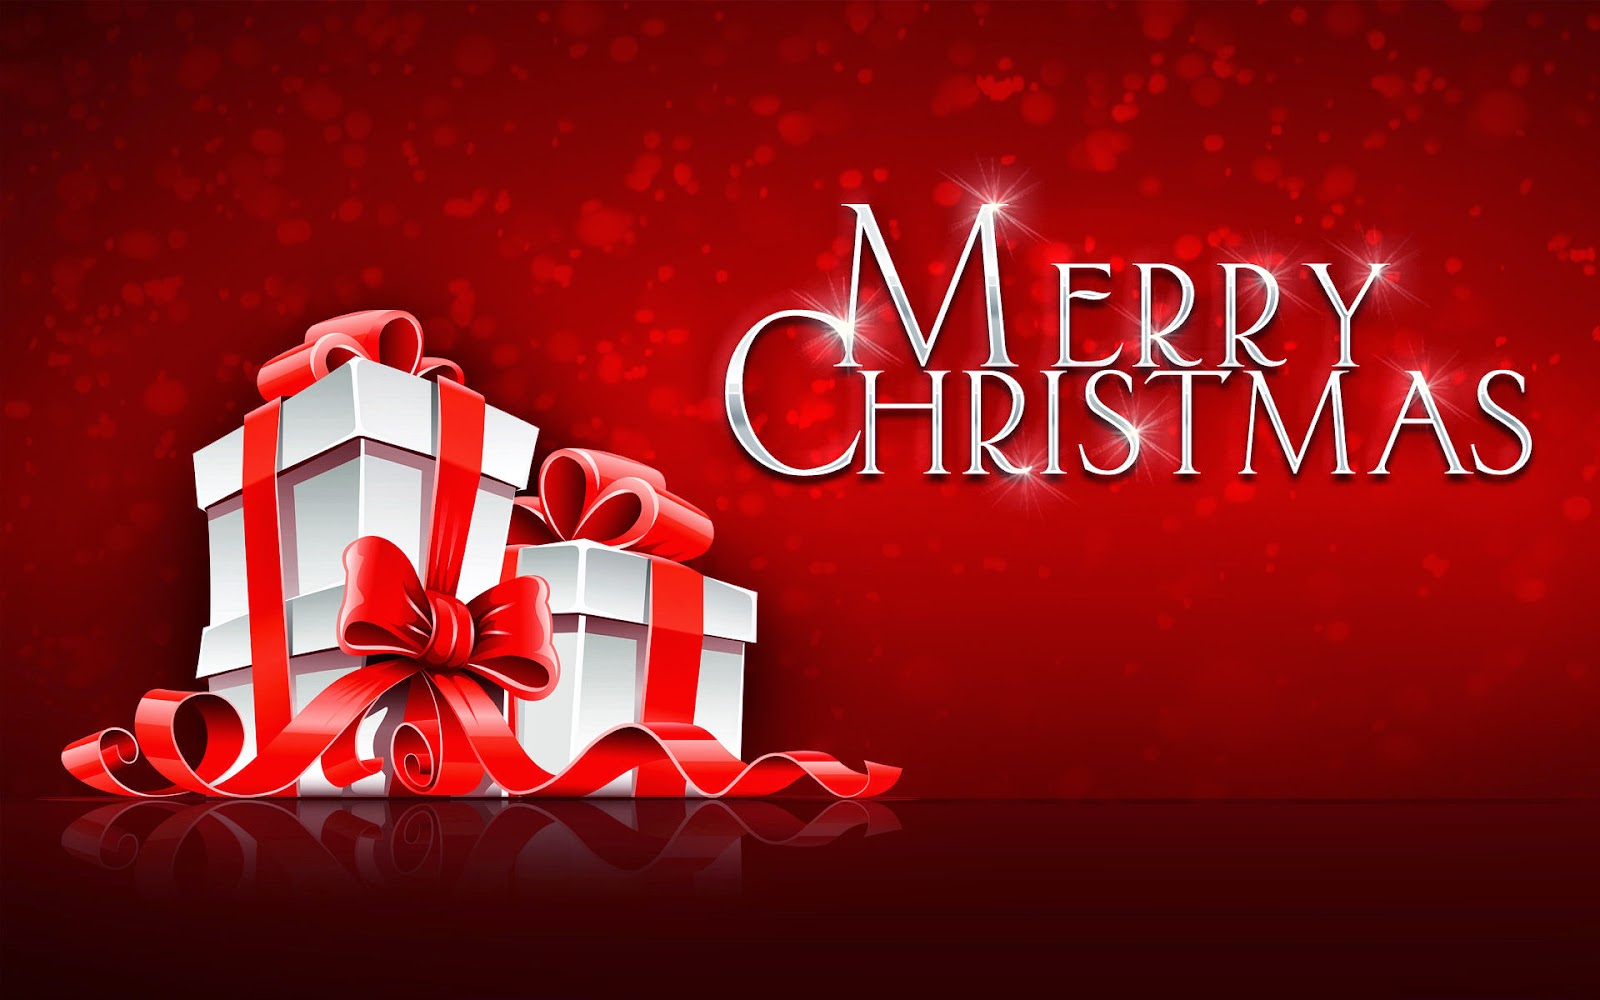 Merry christmas greeting card hd images free download merry christmas text wallpaper with gift box red m4hsunfo